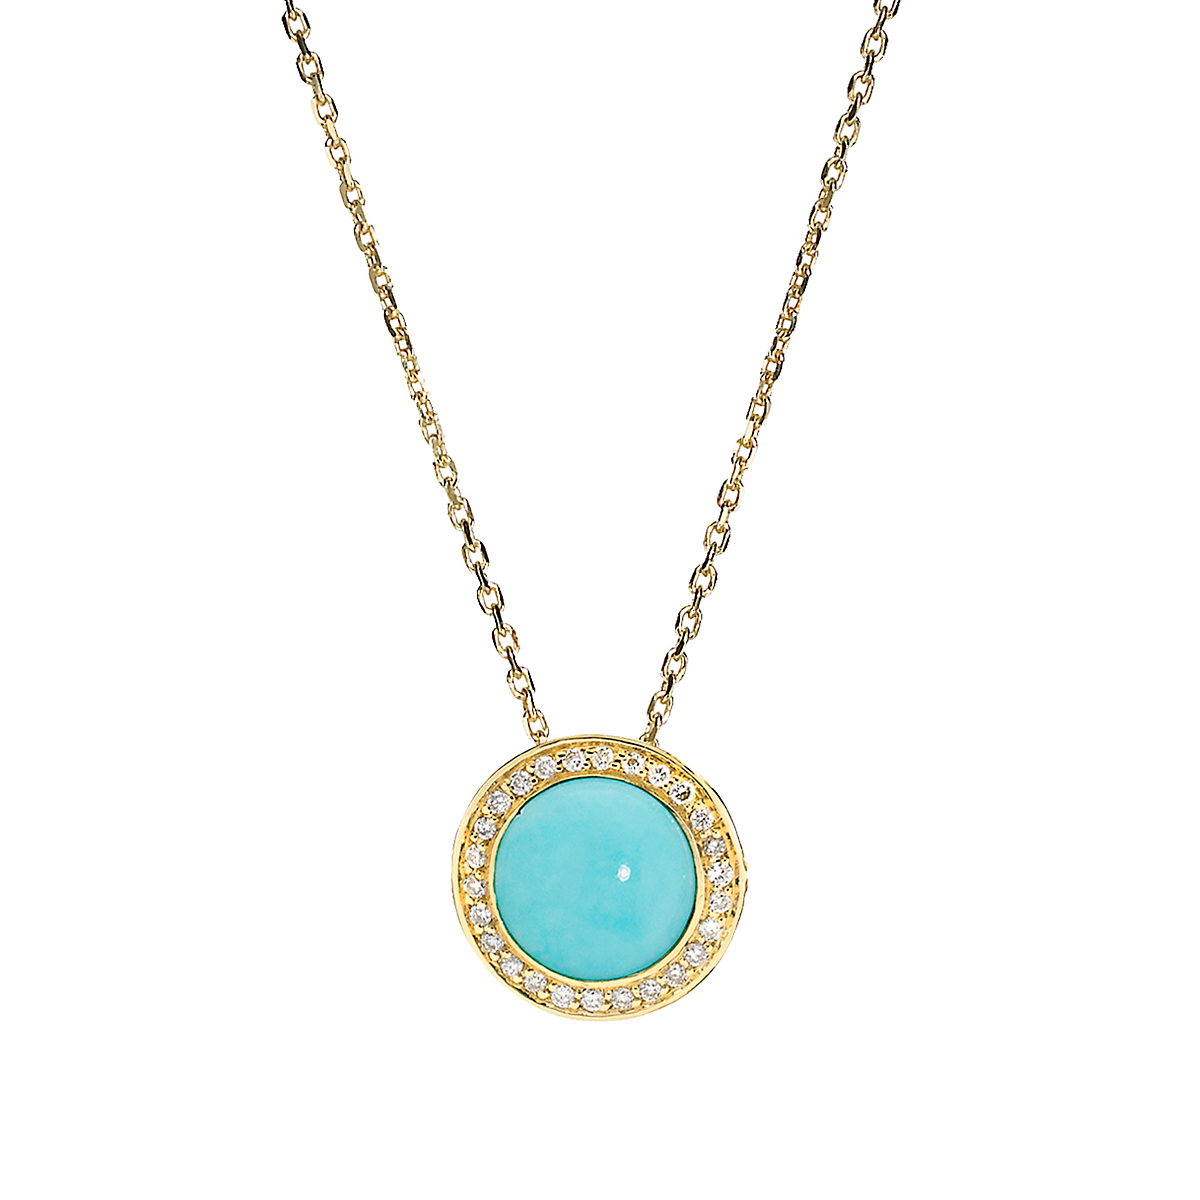 Elizabeth Showers Turquoise & Diamond Button Pendant & Chain